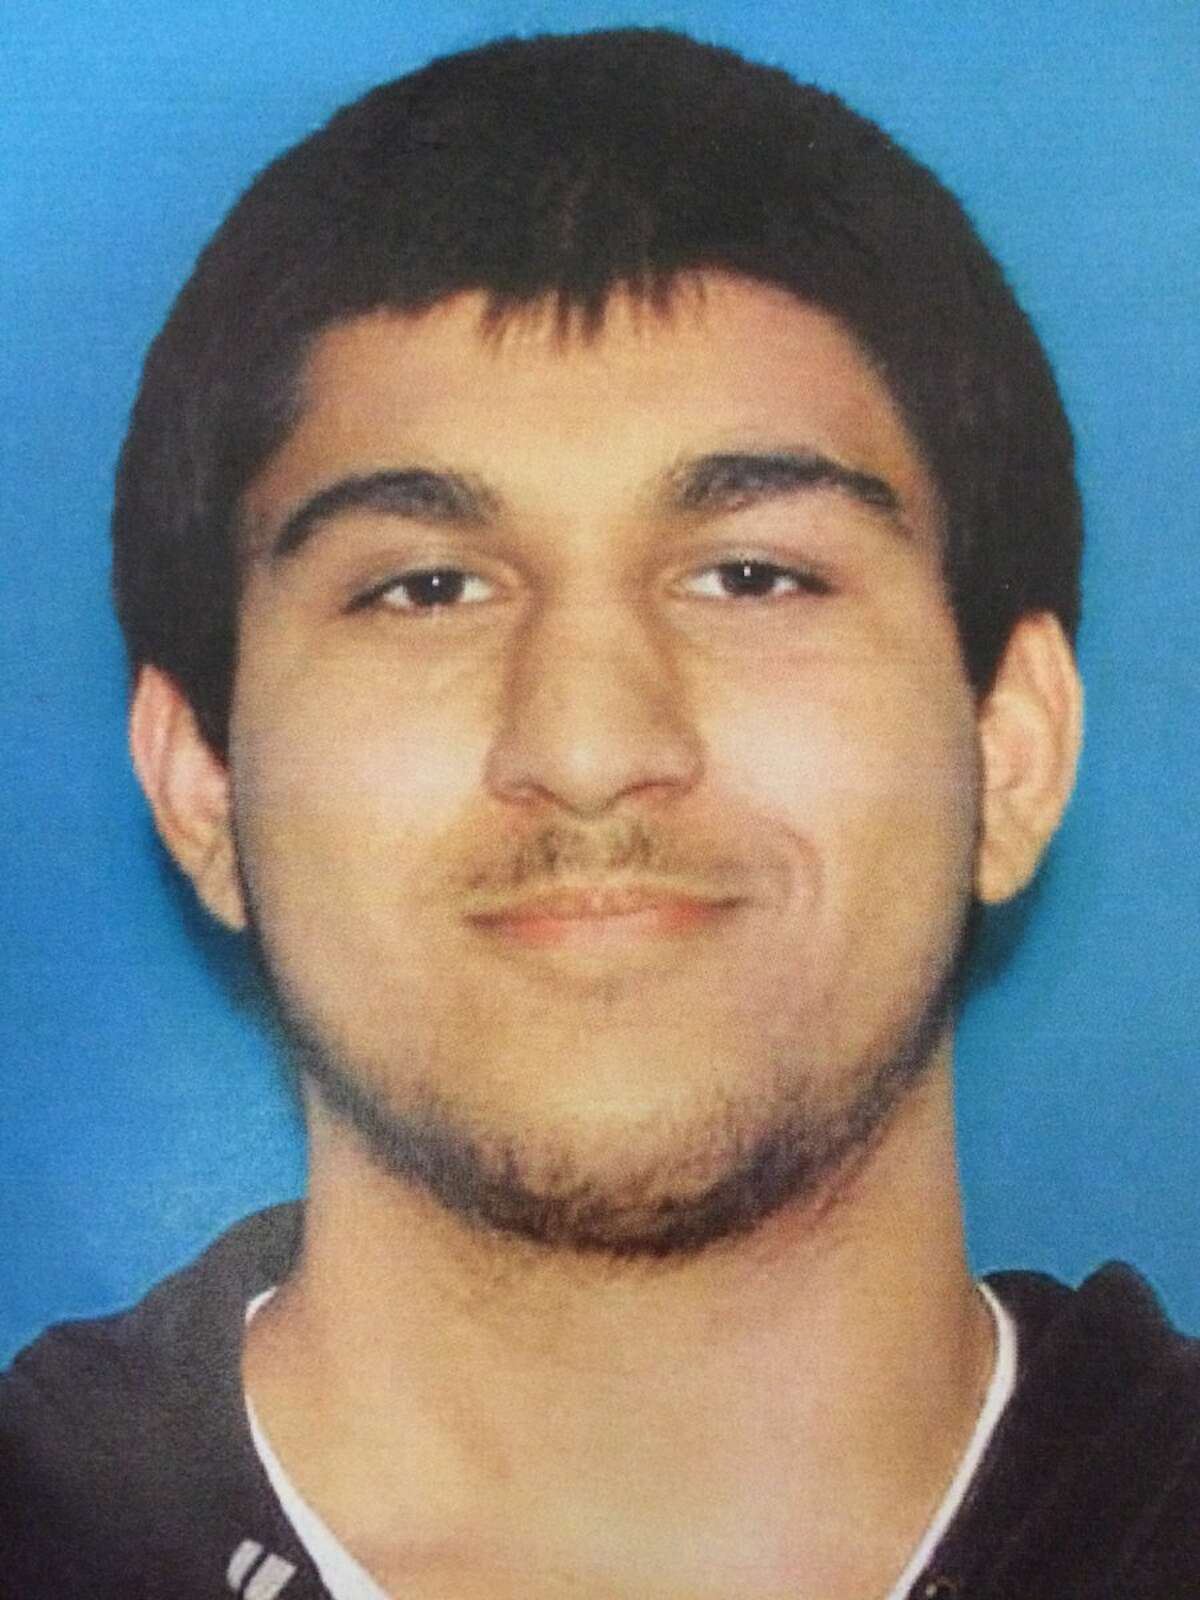 Arcan Cetin, 20-yr-old Oak Harbor resident, is a suspect in the killing of five people in the Cascade Mall on Sept. 23.